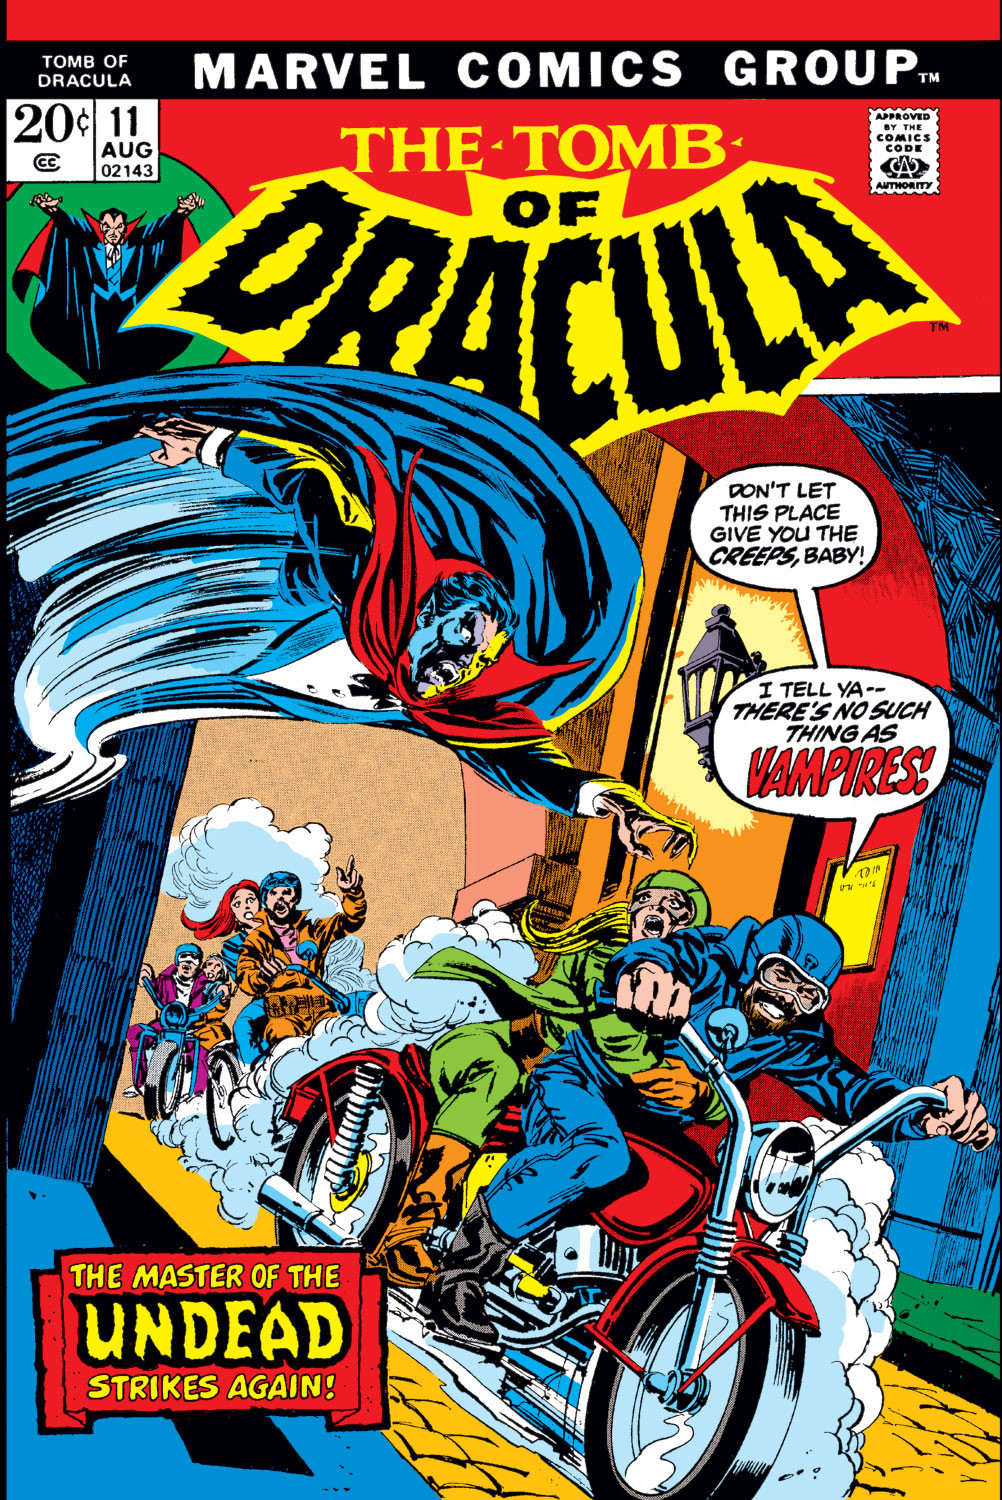 Tomb of Dracula Vol 1 11